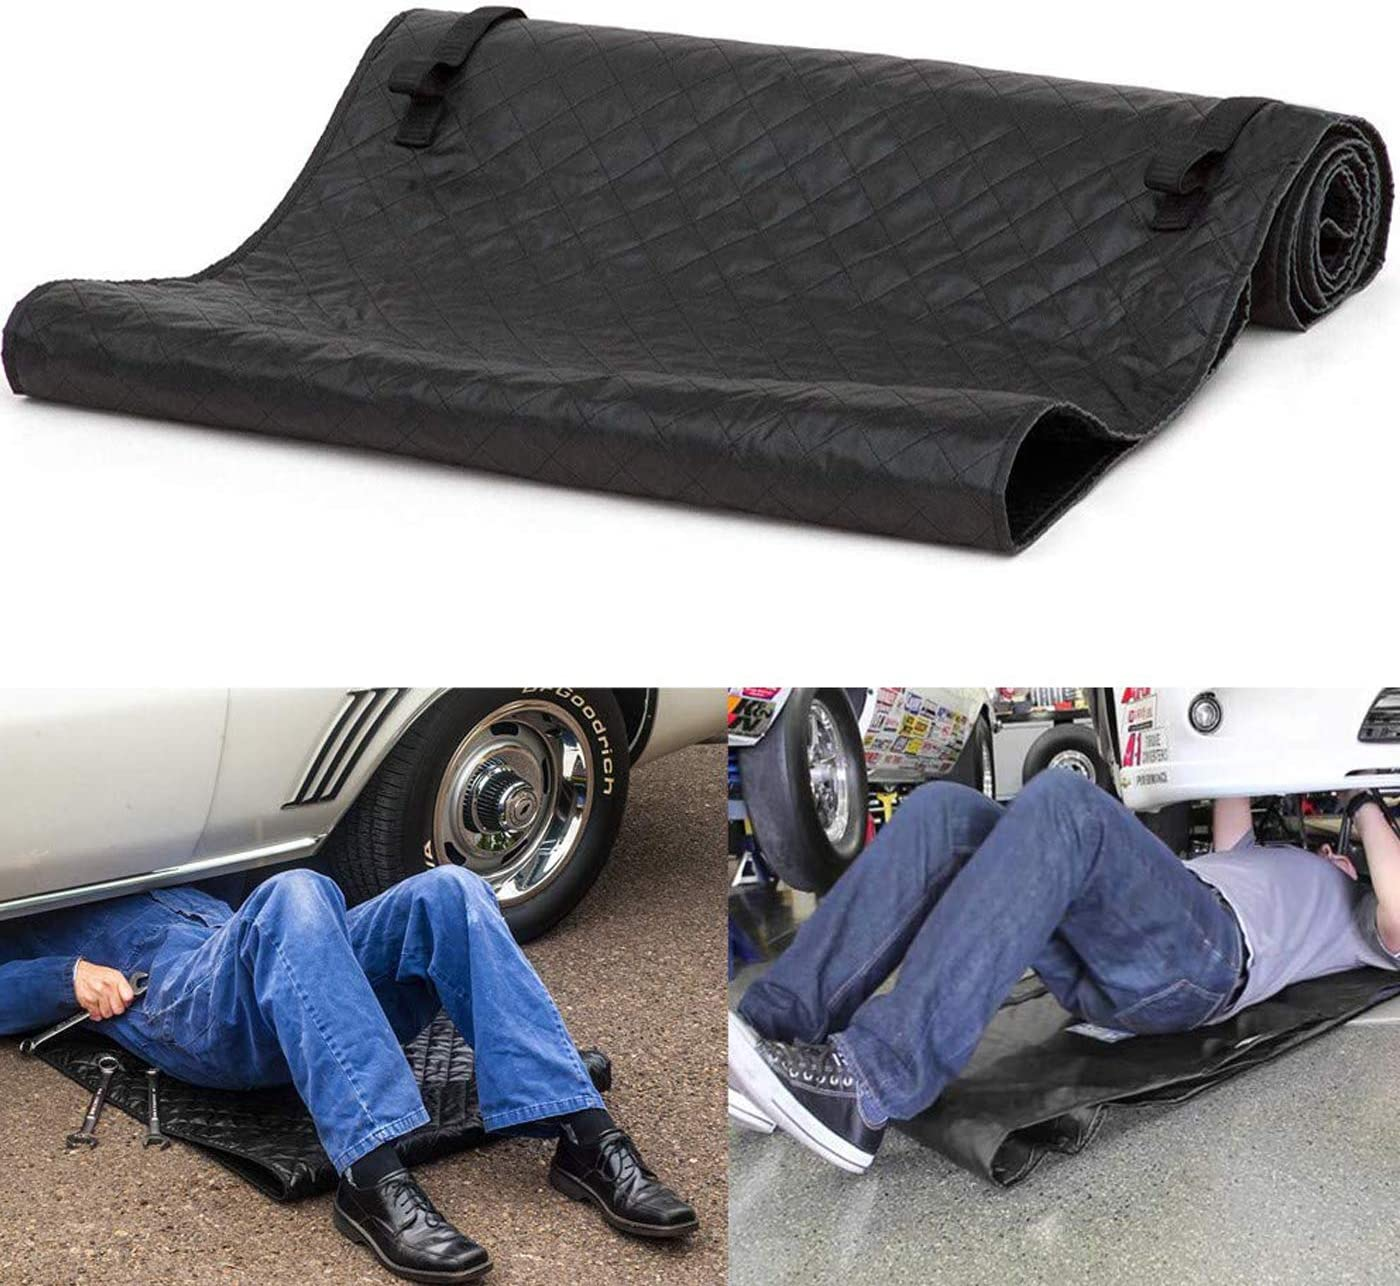 omotor Automotive Car Creeper Black Zero Ground Auto Mechanics Repair Creepers Mat Rolling Pad Under The Vehicle for Cars Working and Household